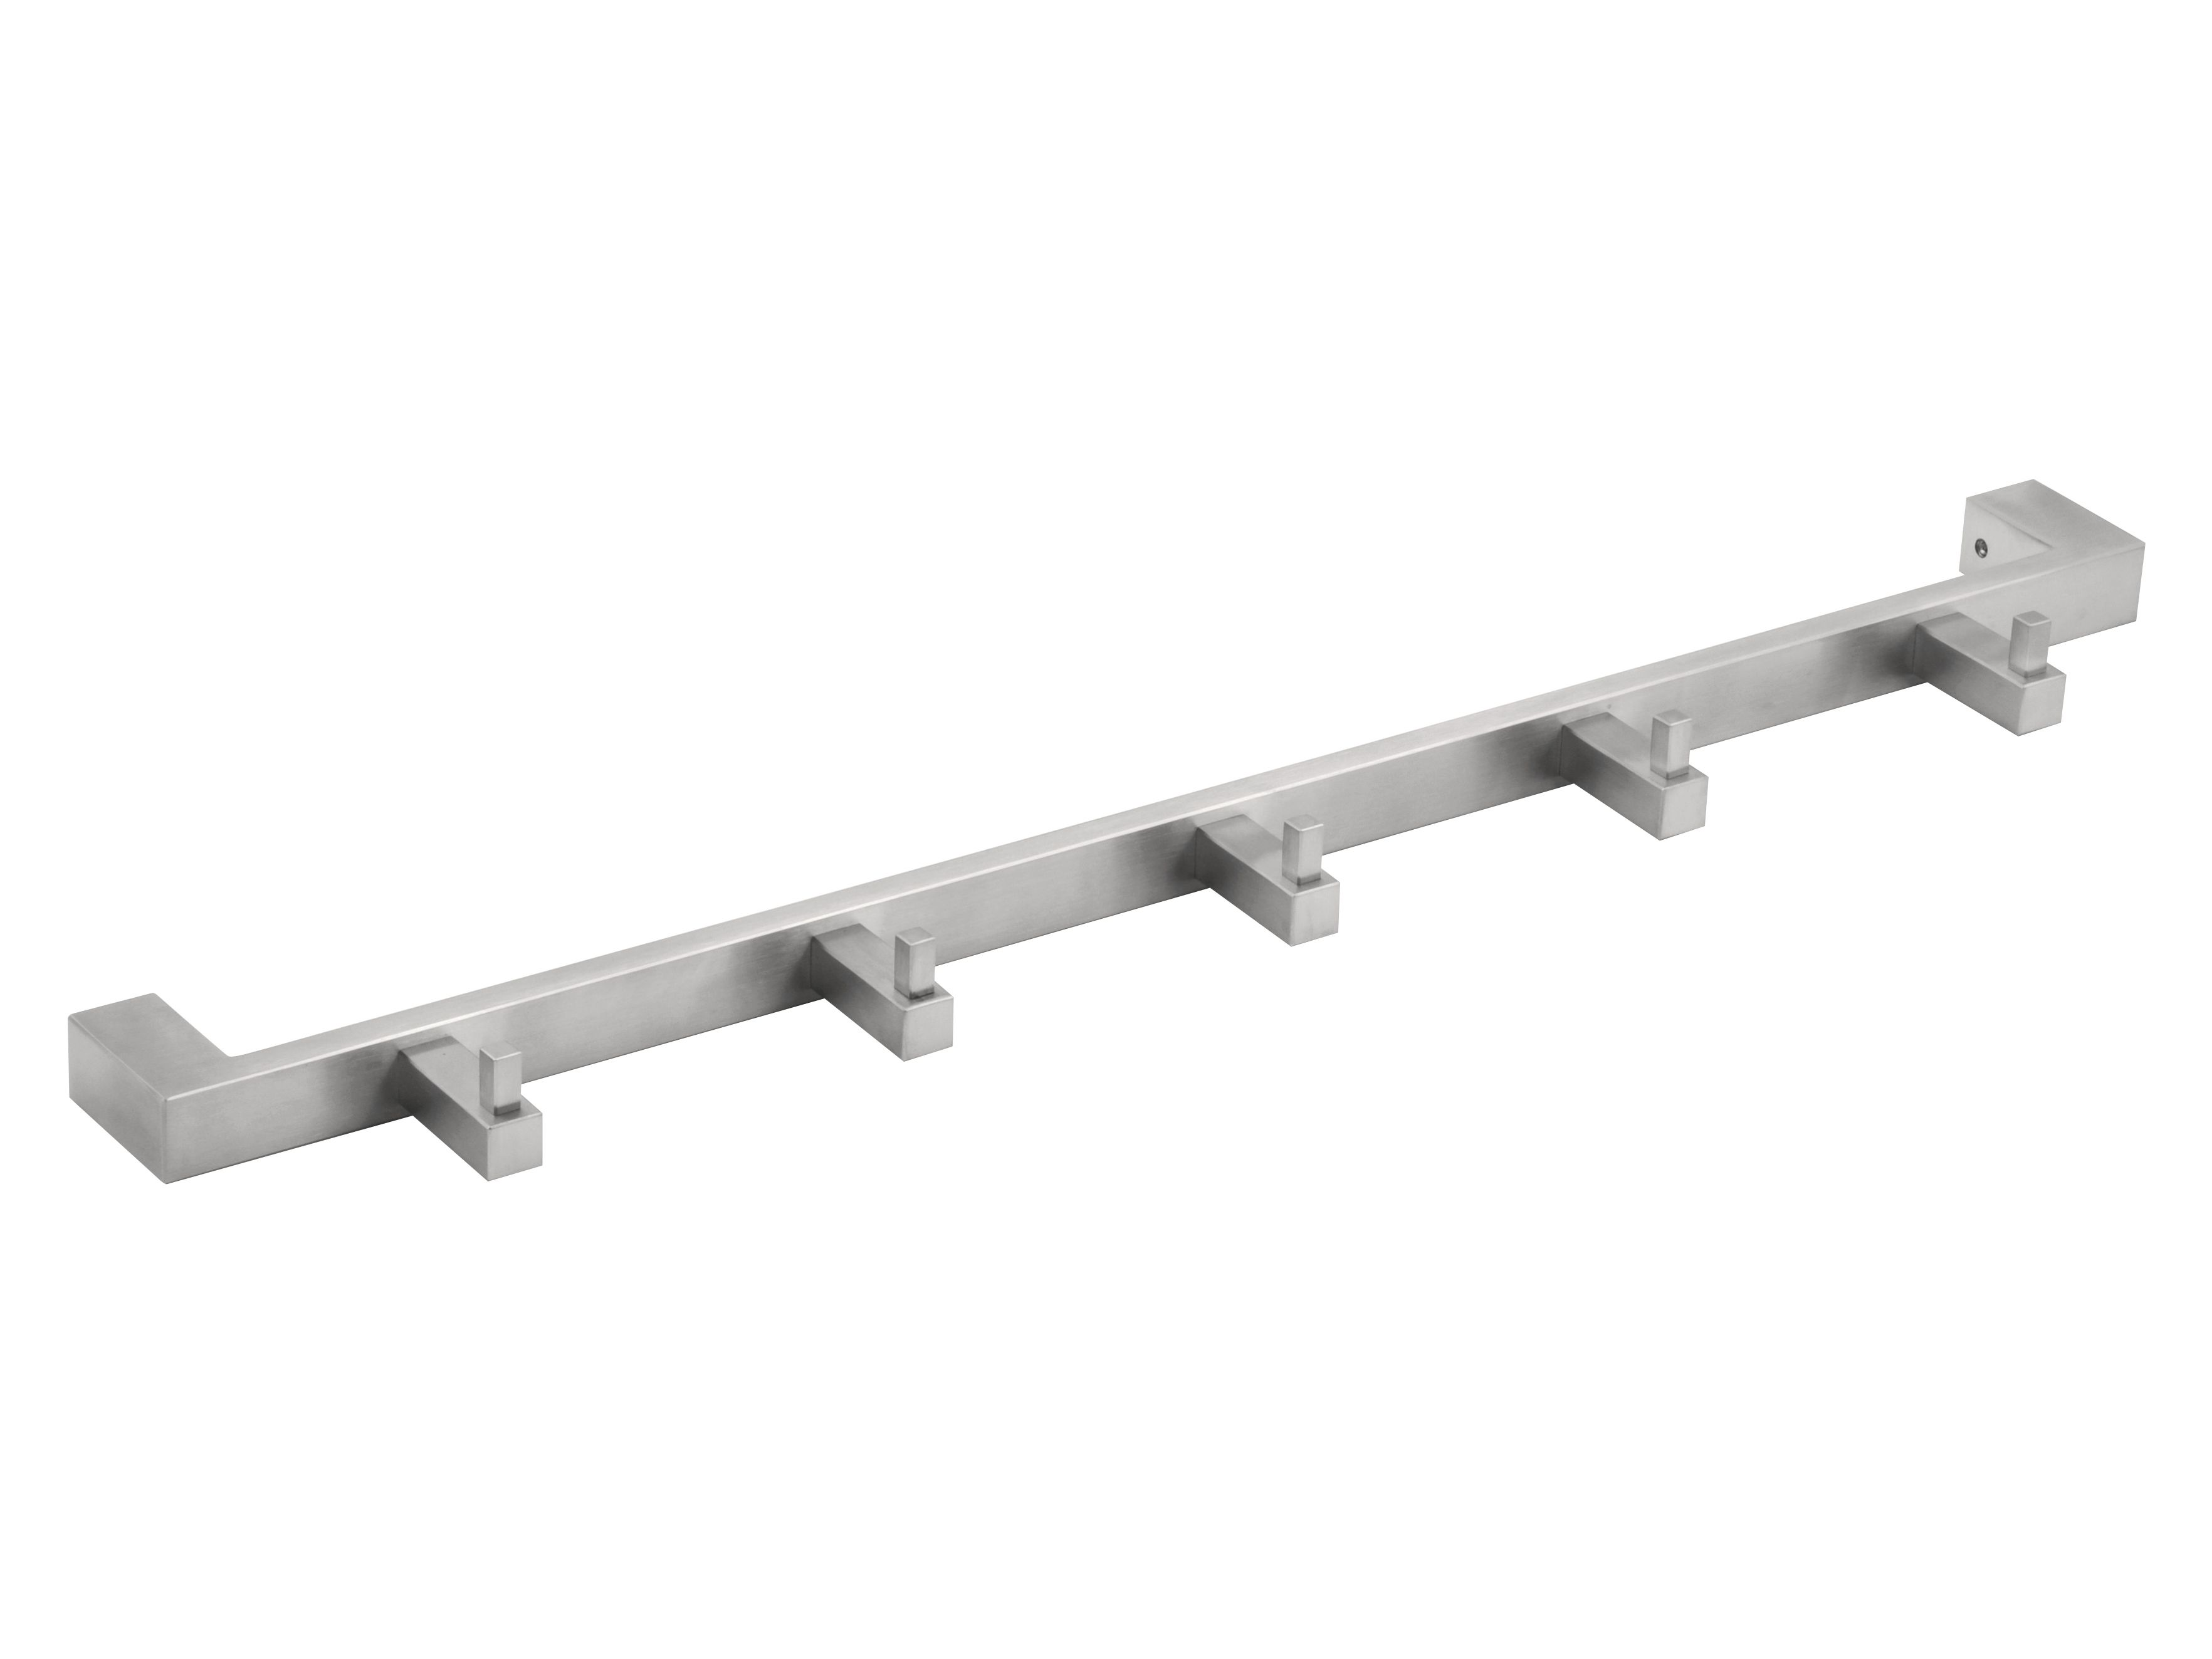 Wall-mounted stainless steel coat rack SQUARE   Wall-mounted coat rack - Formani Holland B.V.